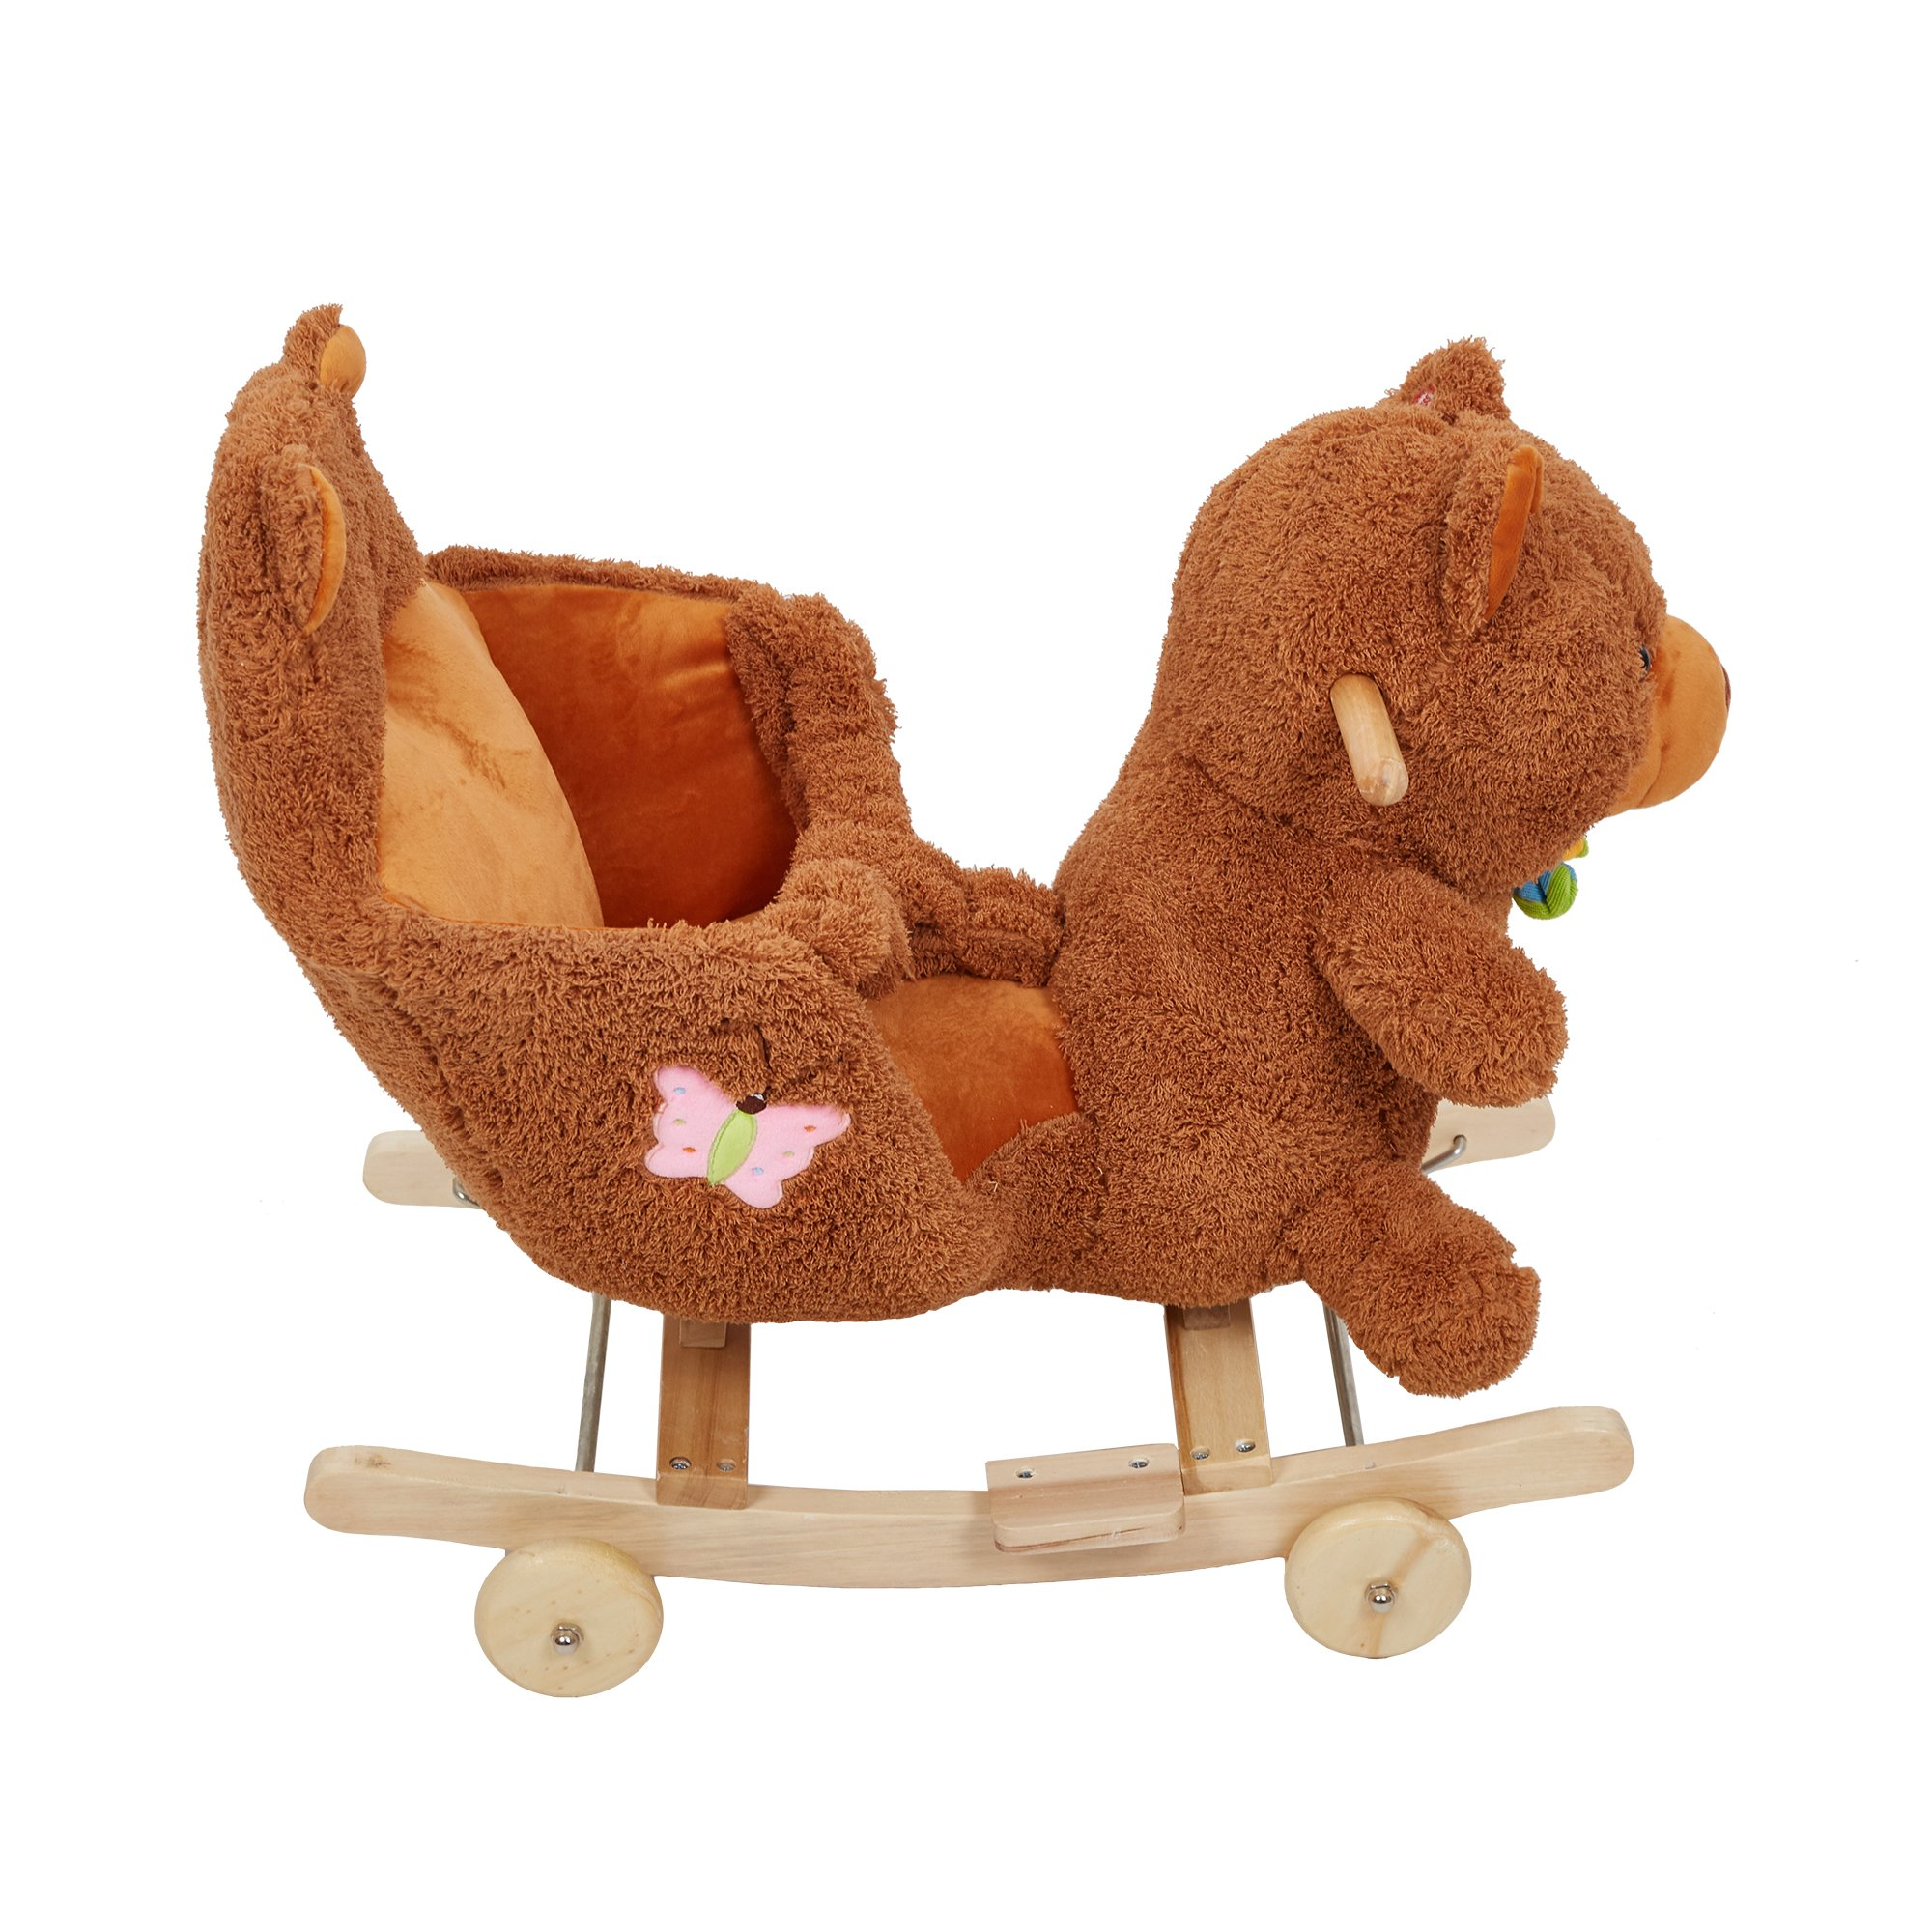 Lucky Tree Rocking Horse Wooden Riding Toys Plush Brown Bear Ride on Toy with Wheels for kids 18 Months-4 Years,Bear by Lucky Tree (Image #4)